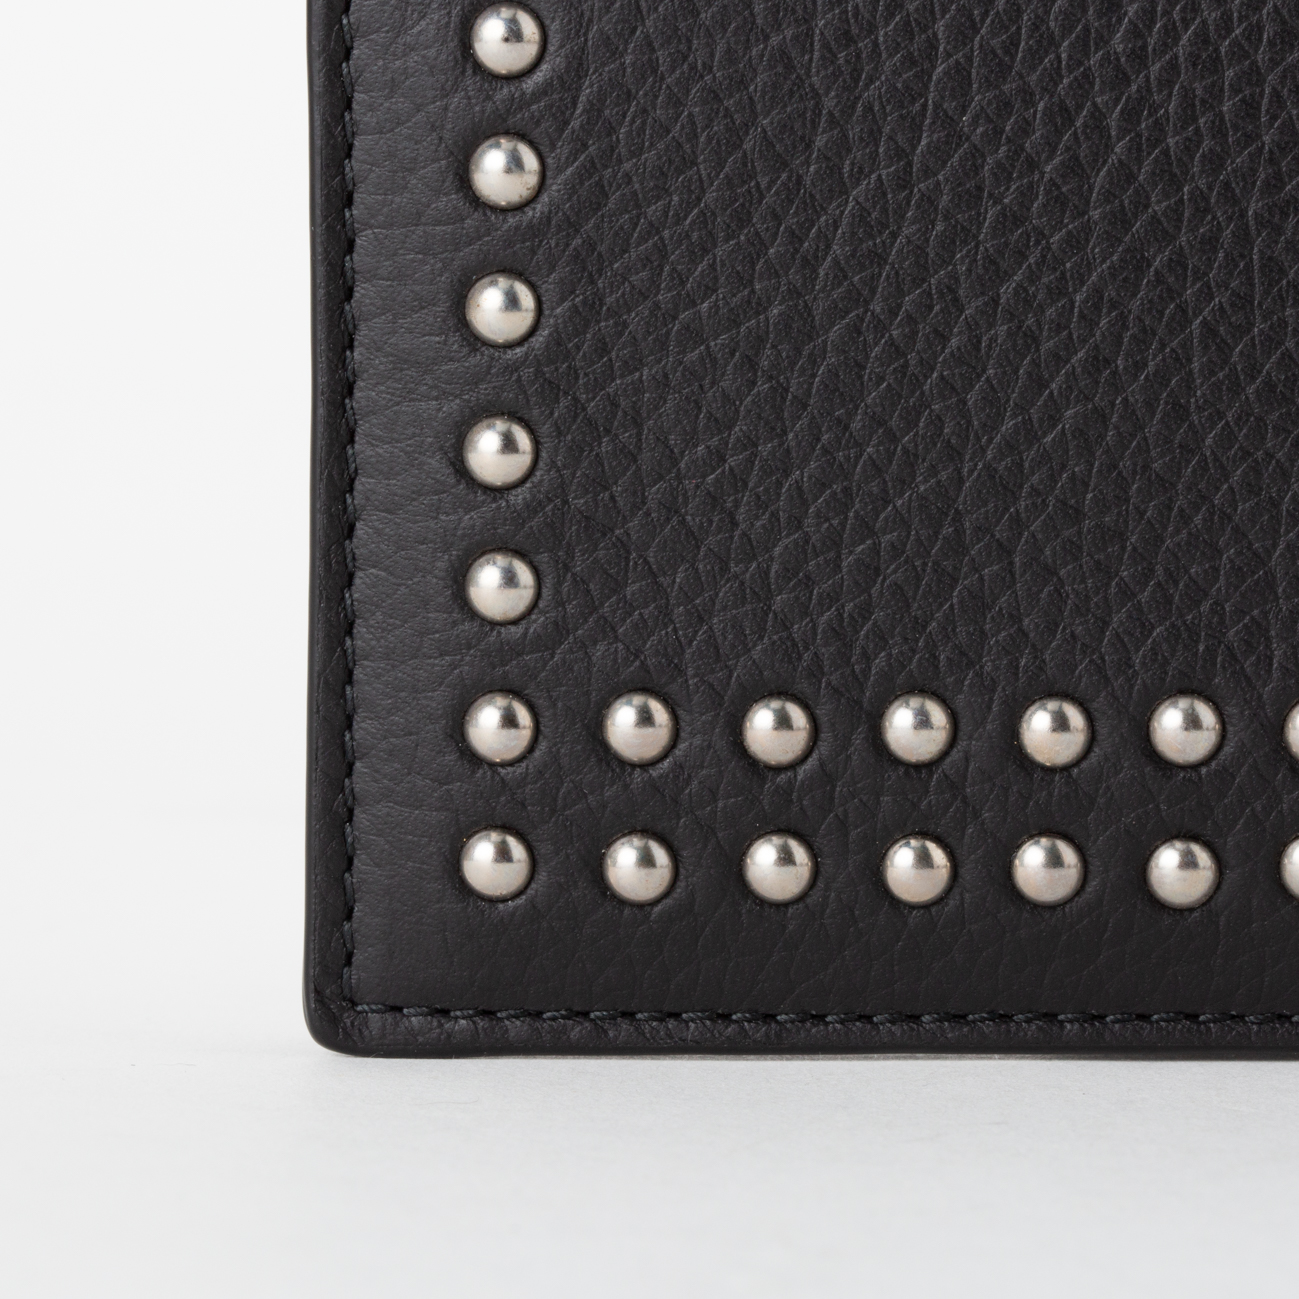 VISIT CARD HOLDER WITH STUDS 詳細画像 ブラック 4